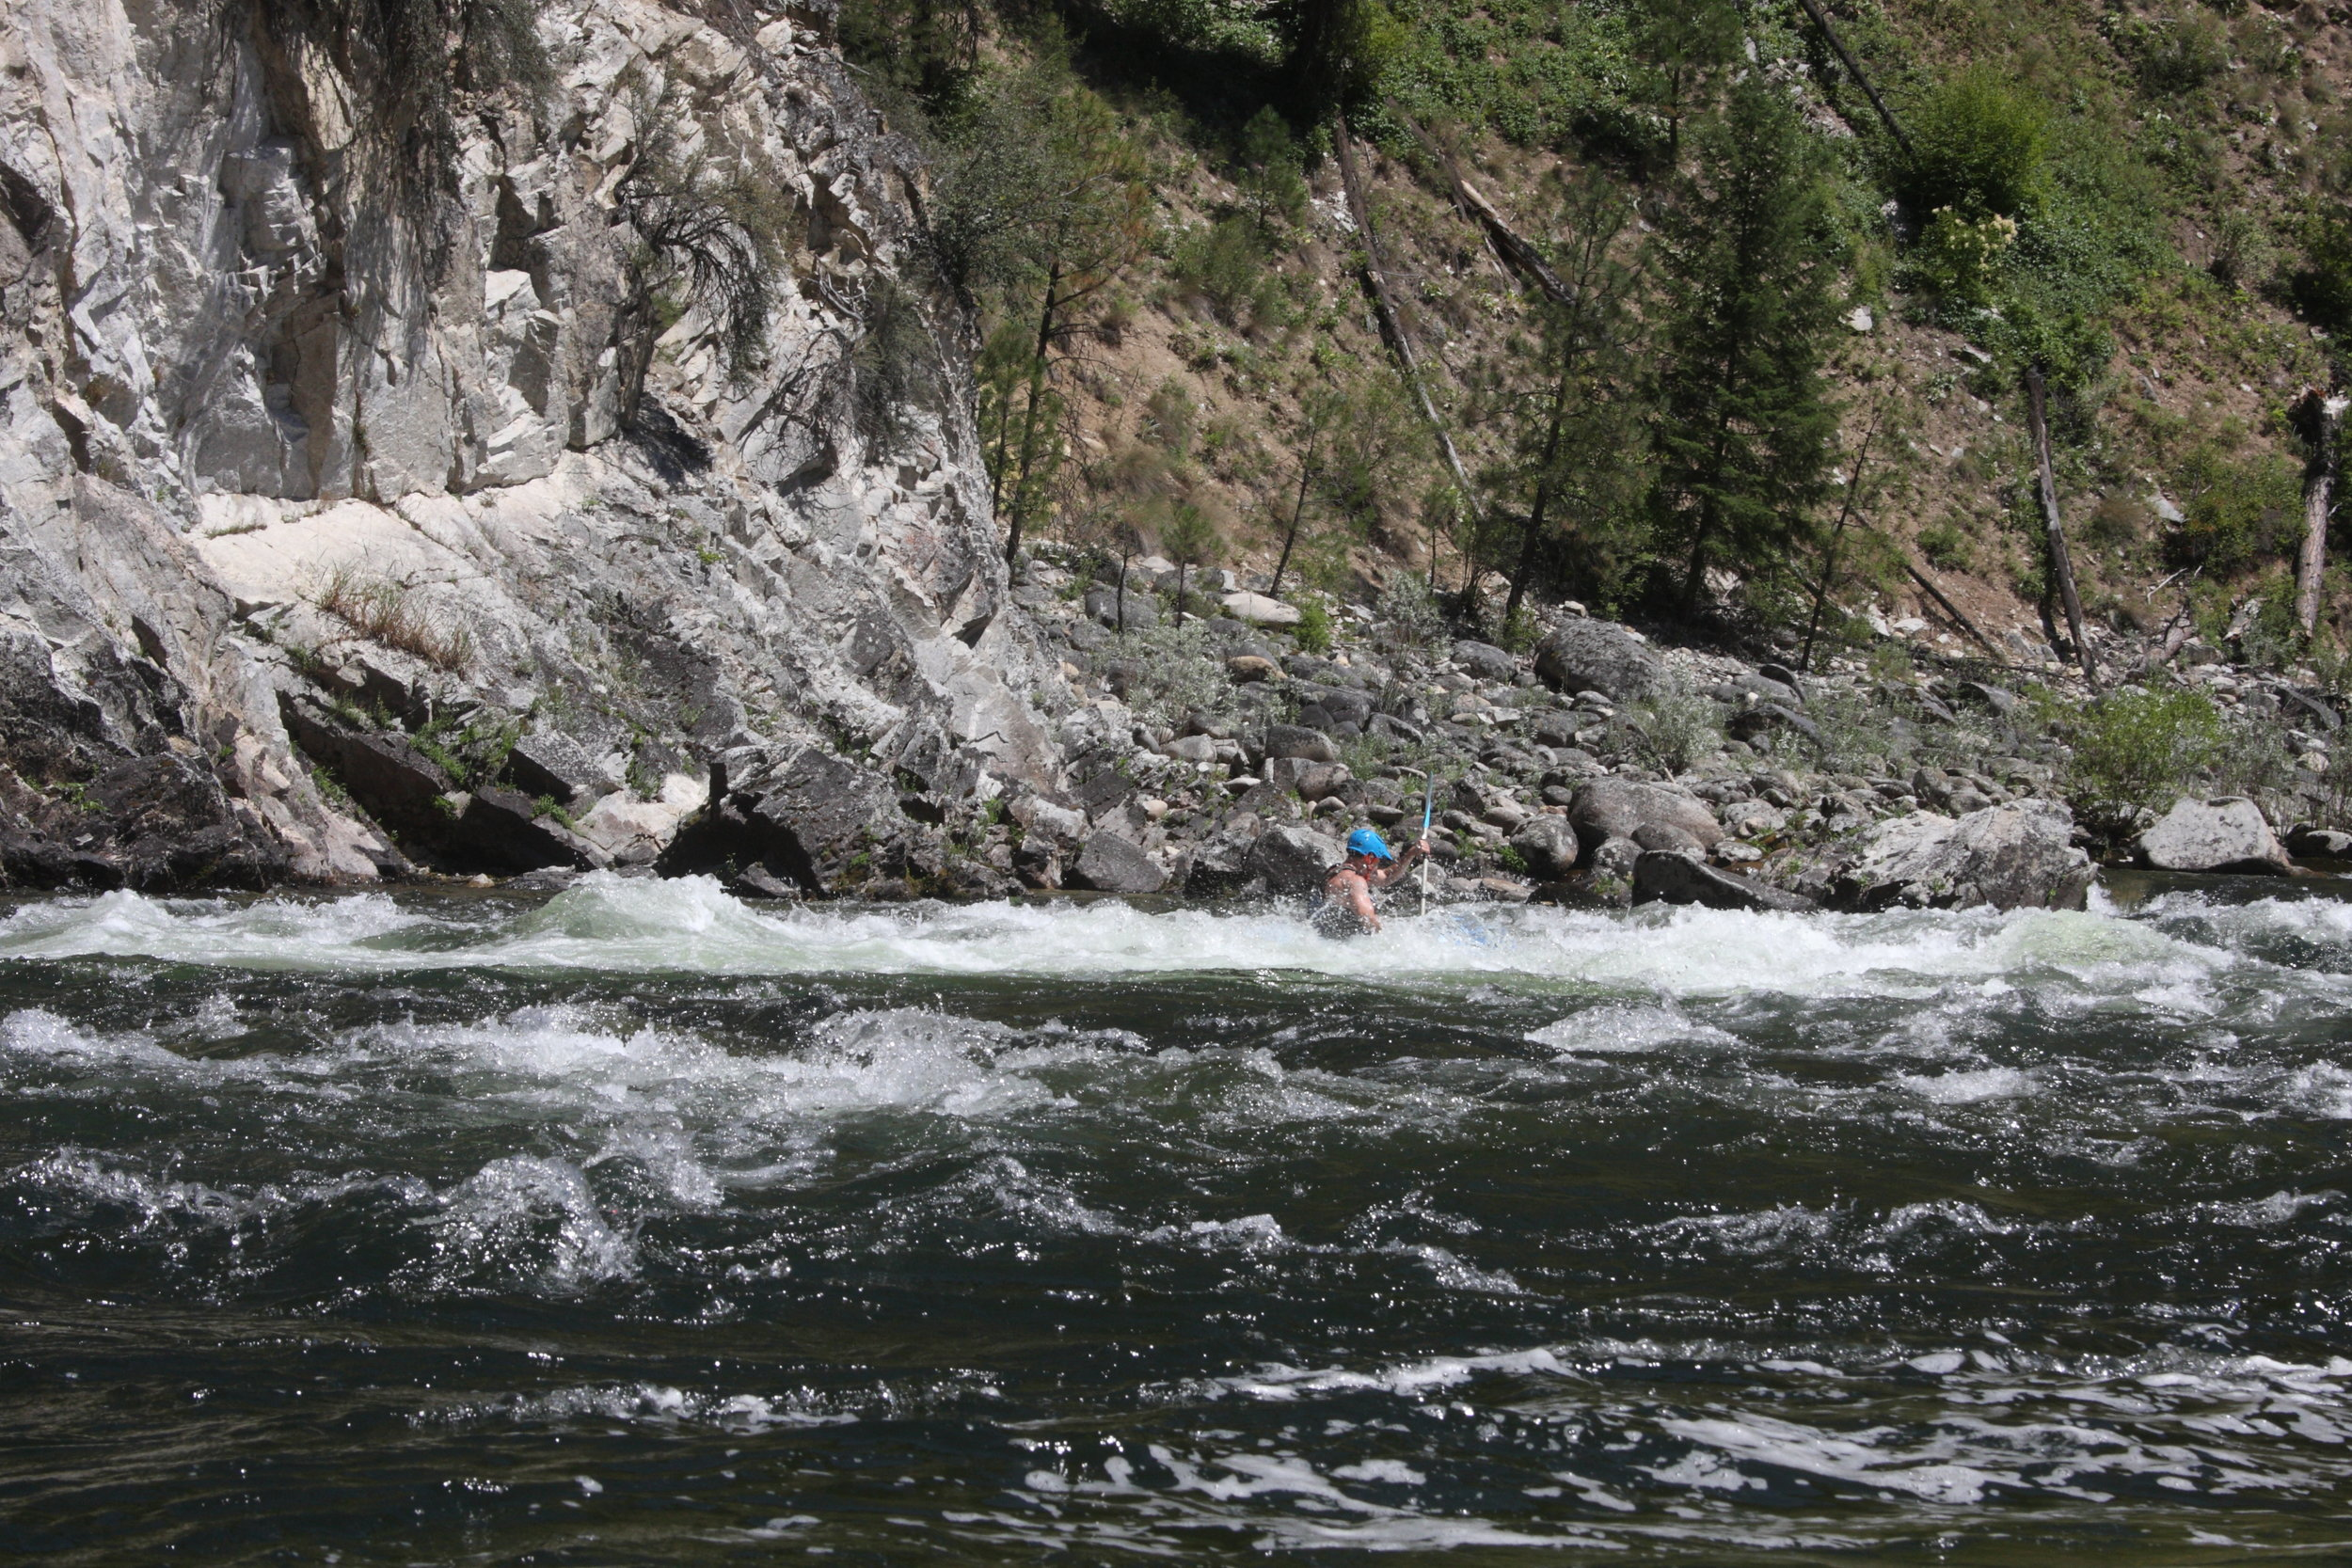 Paddling the secluded South Fork